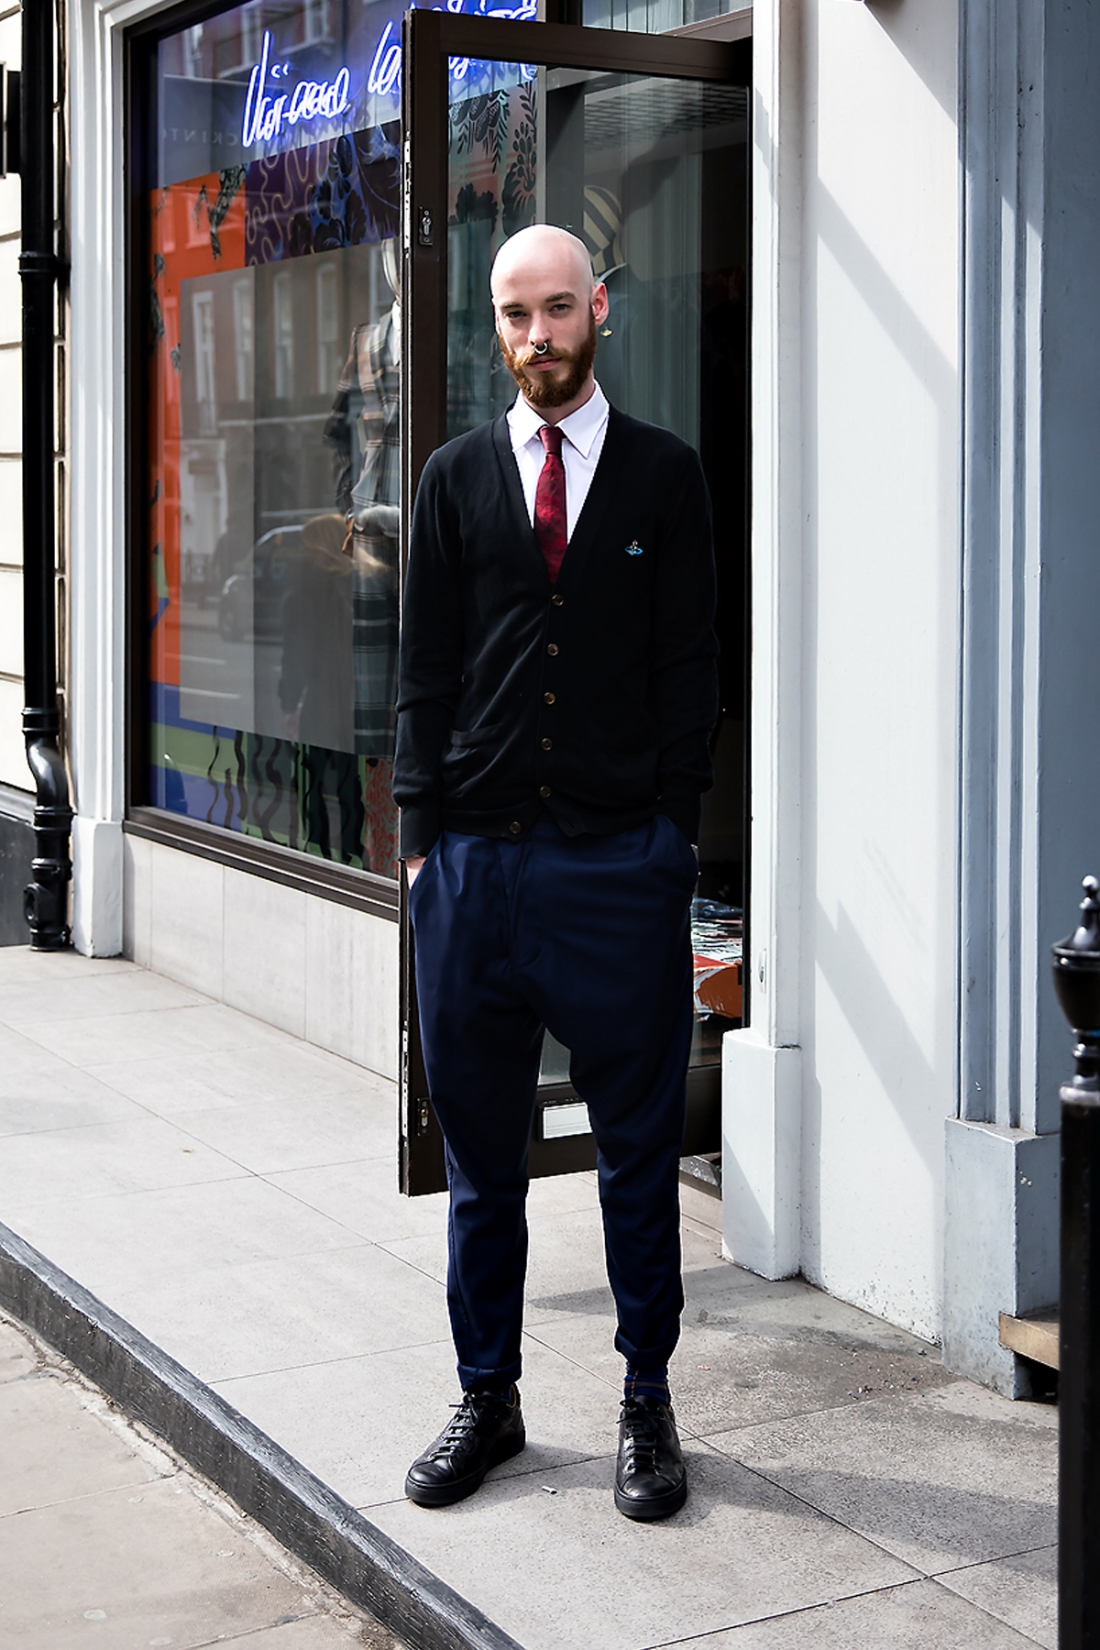 Luke Anderson, Street Fashion 2017 in London.jpg